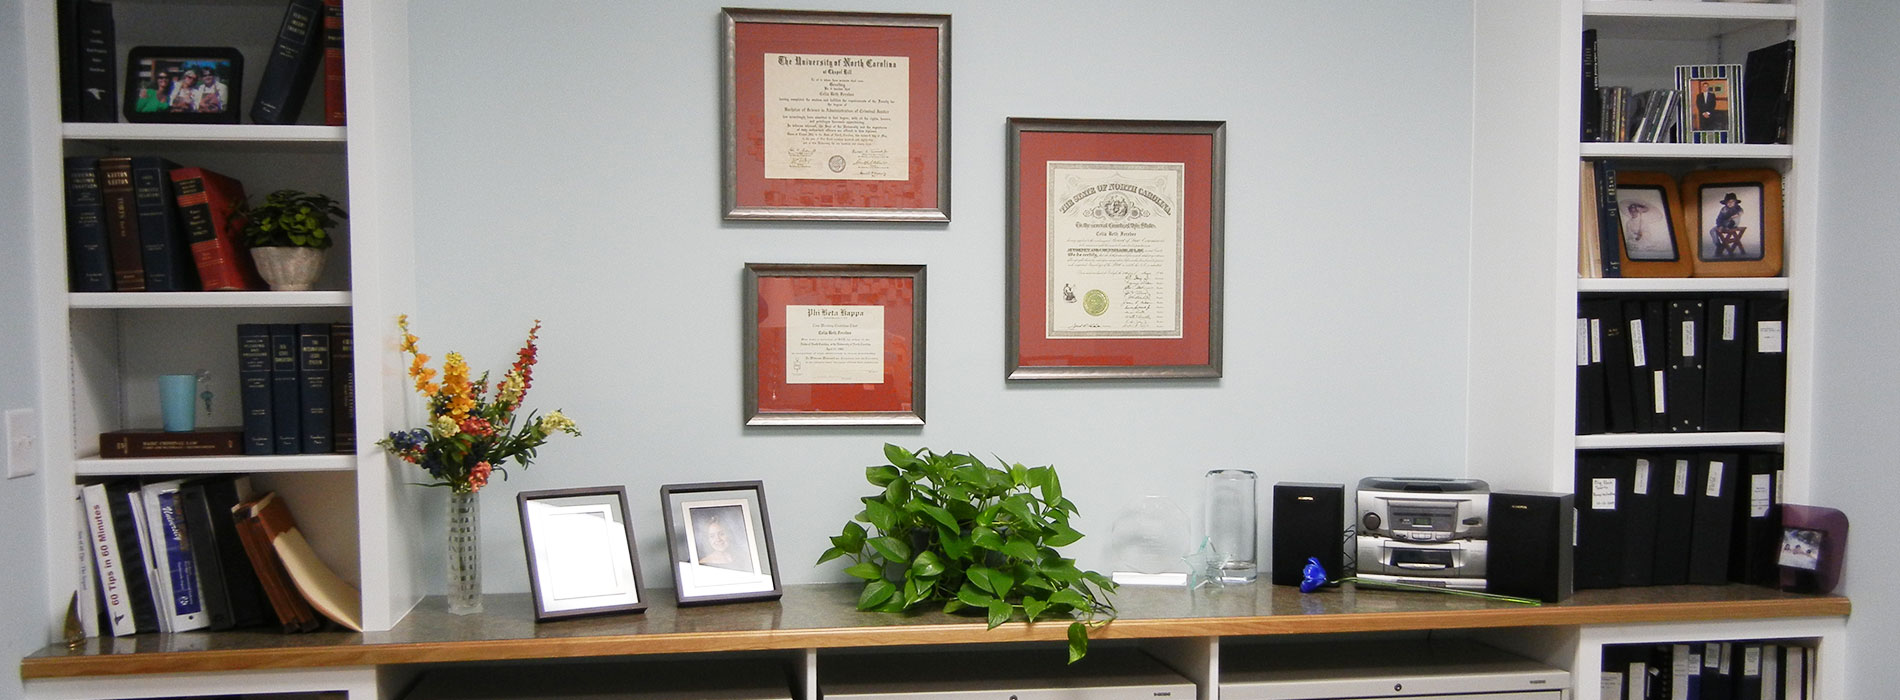 Commercial Office Interior Design Services In New Bern Nc